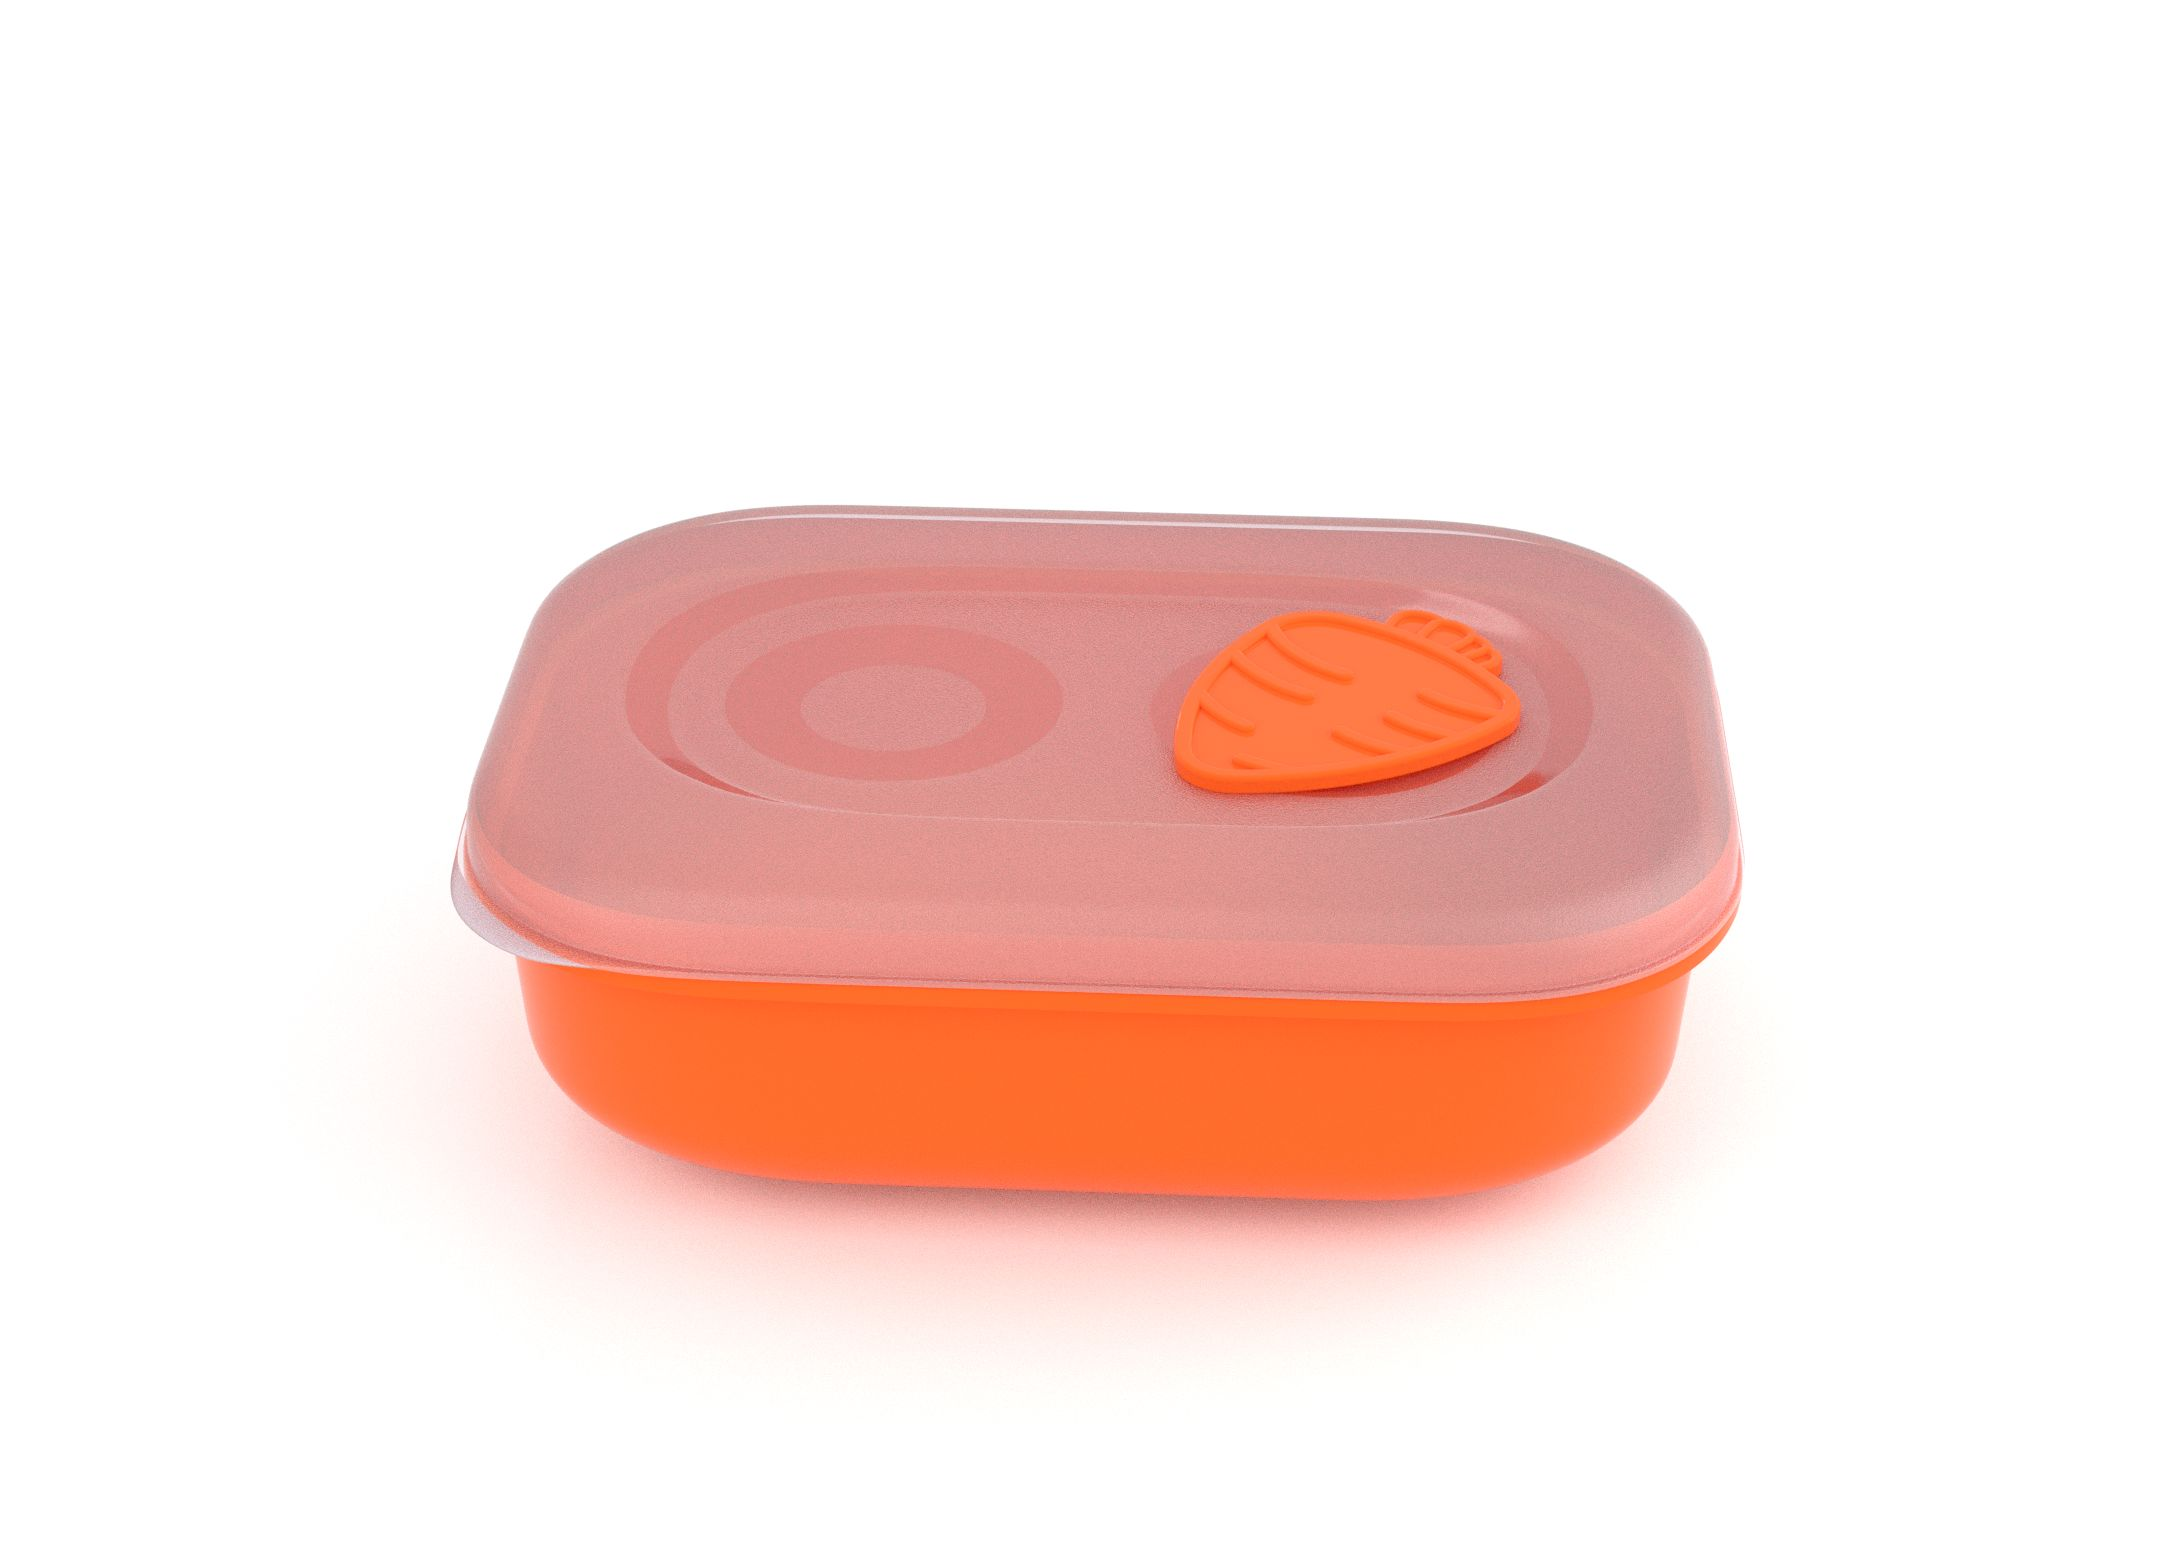 Tama Lock Rectangular Food Container 900ml 9901 with Steam Release Carrot Valve Orange